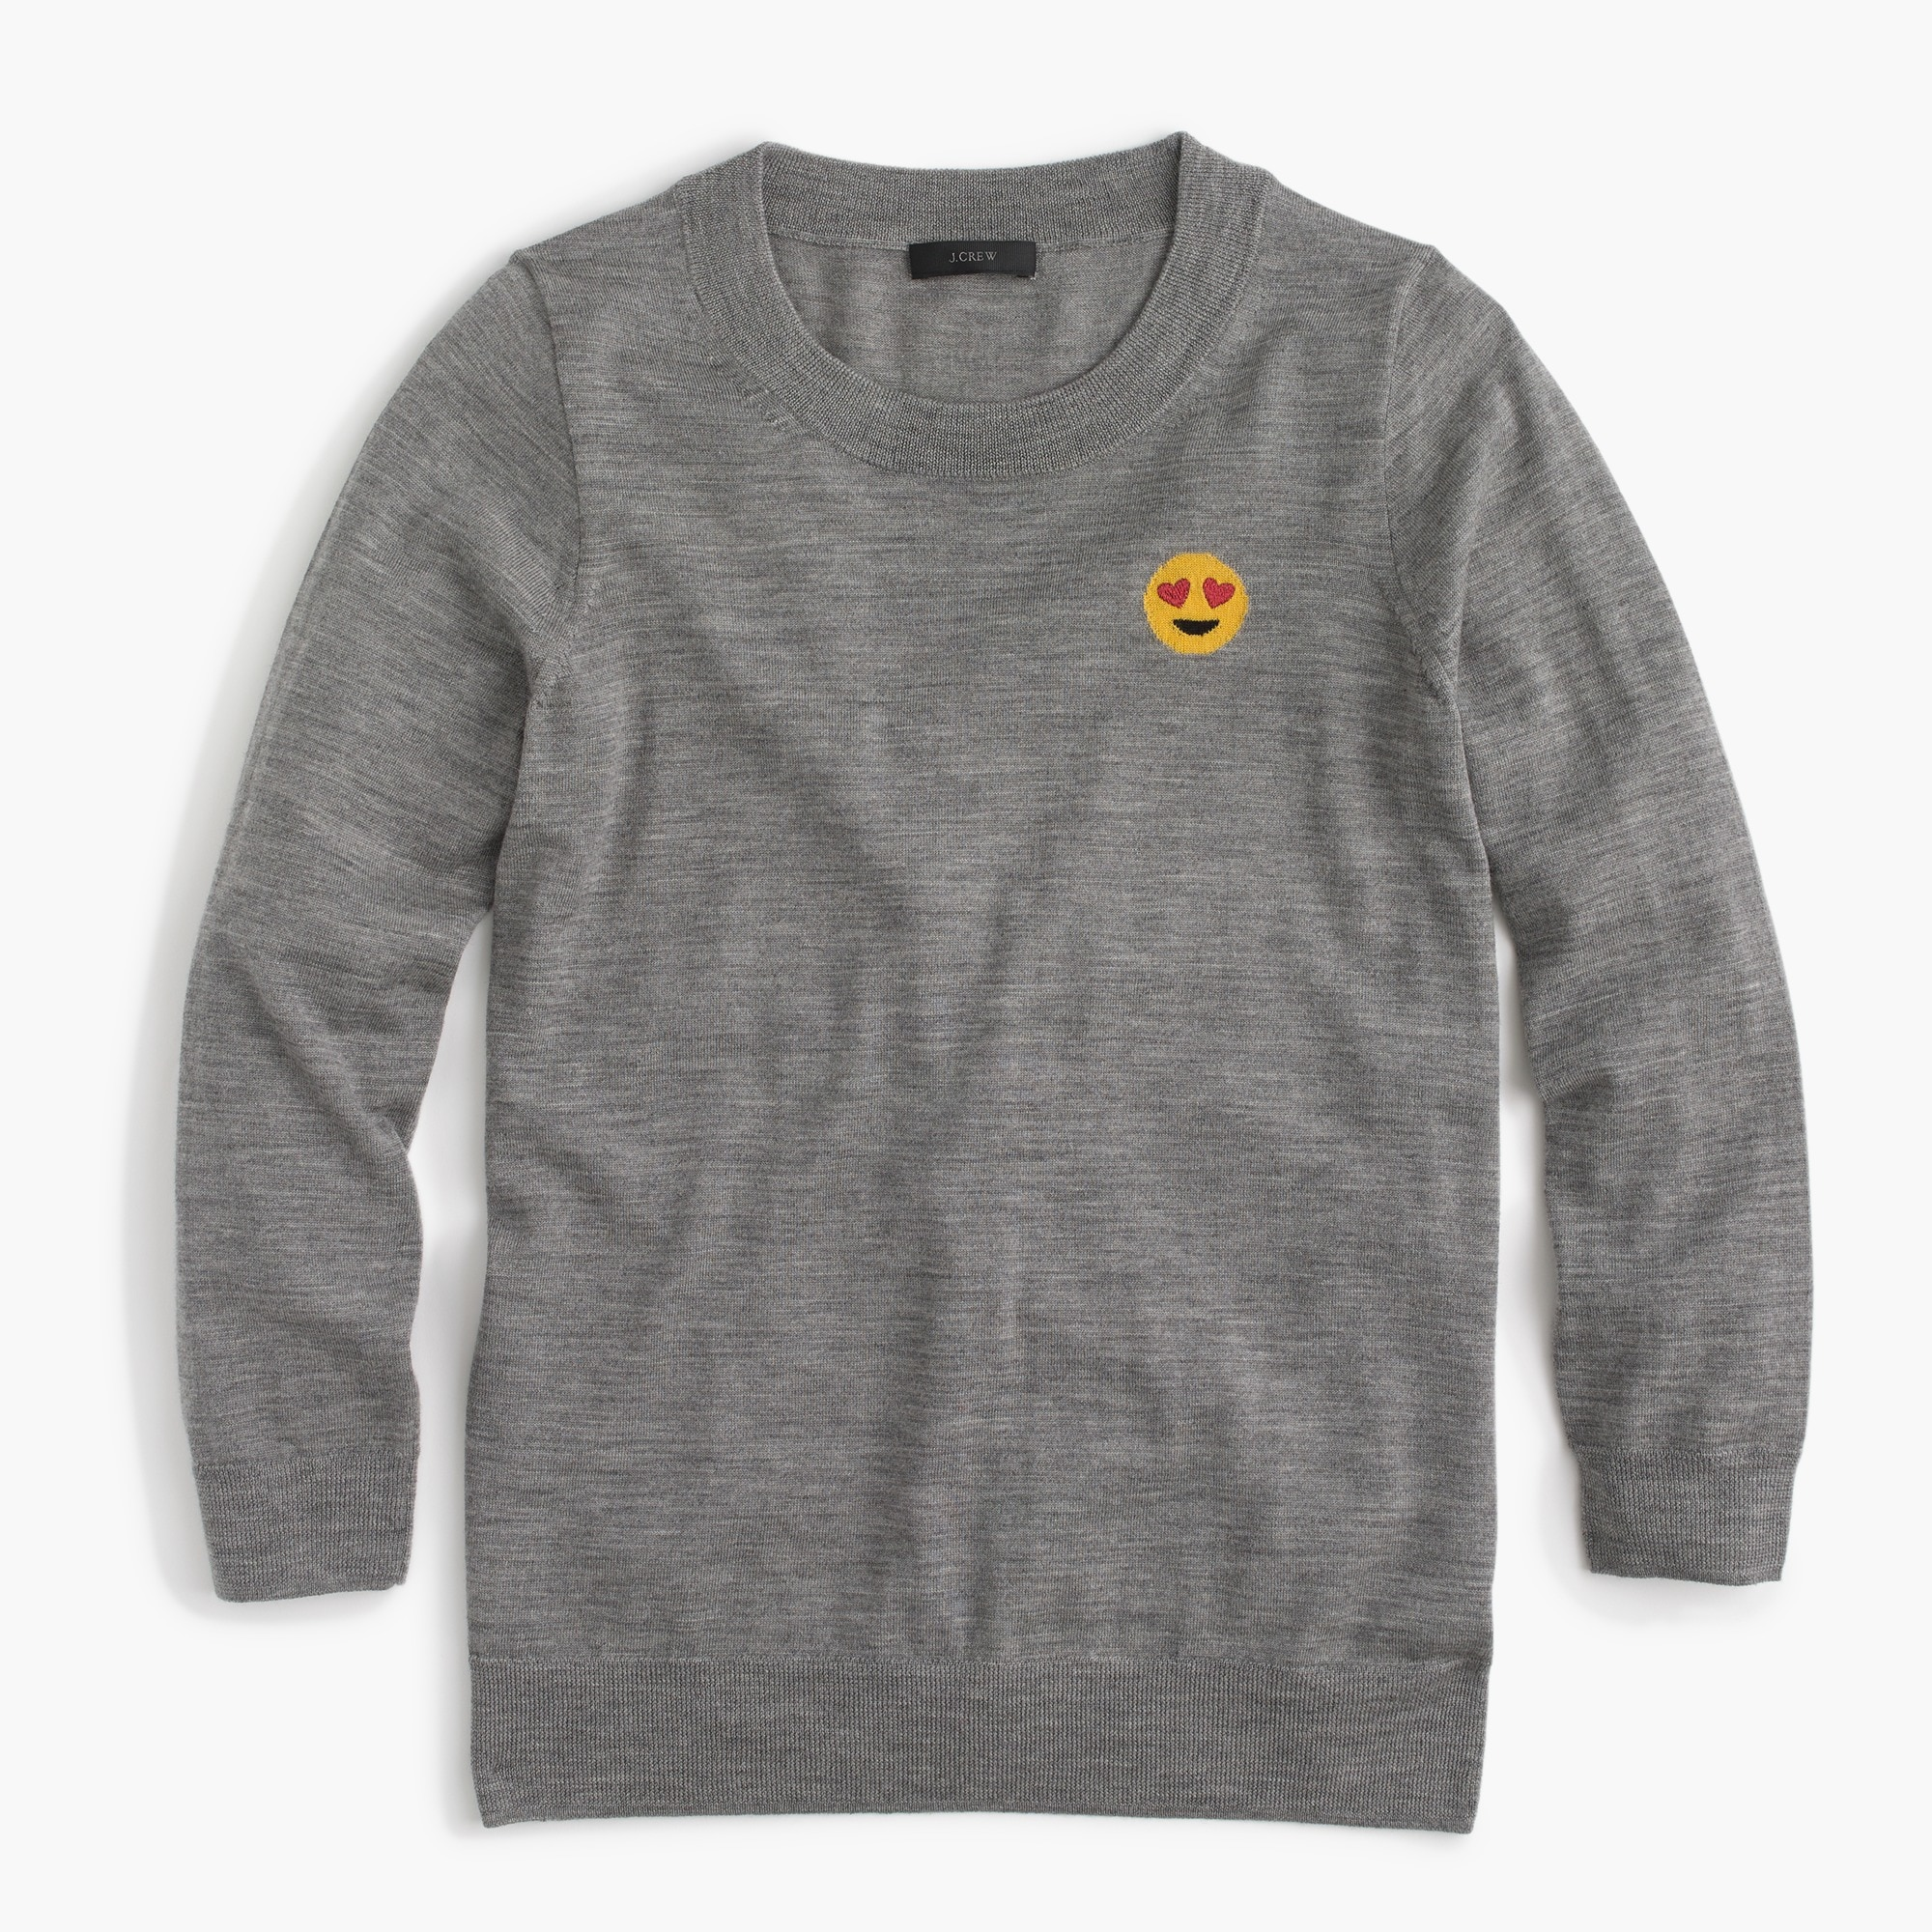 Tippi sweater with emoji patch